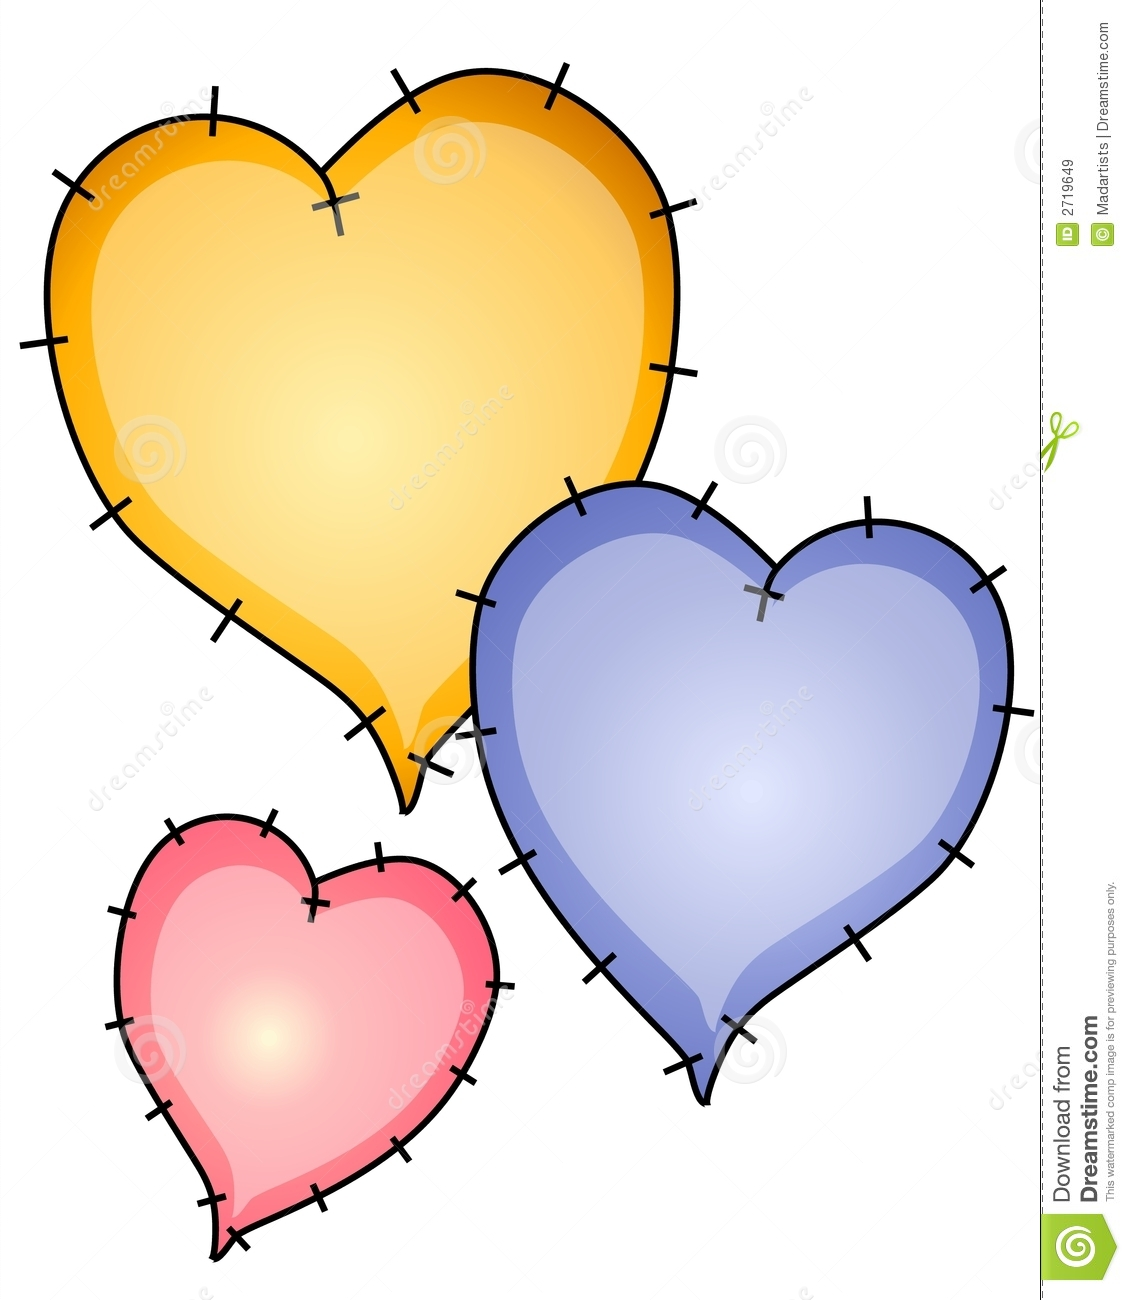 Heart Clipart | Clipart Panda - Free Clipart Images